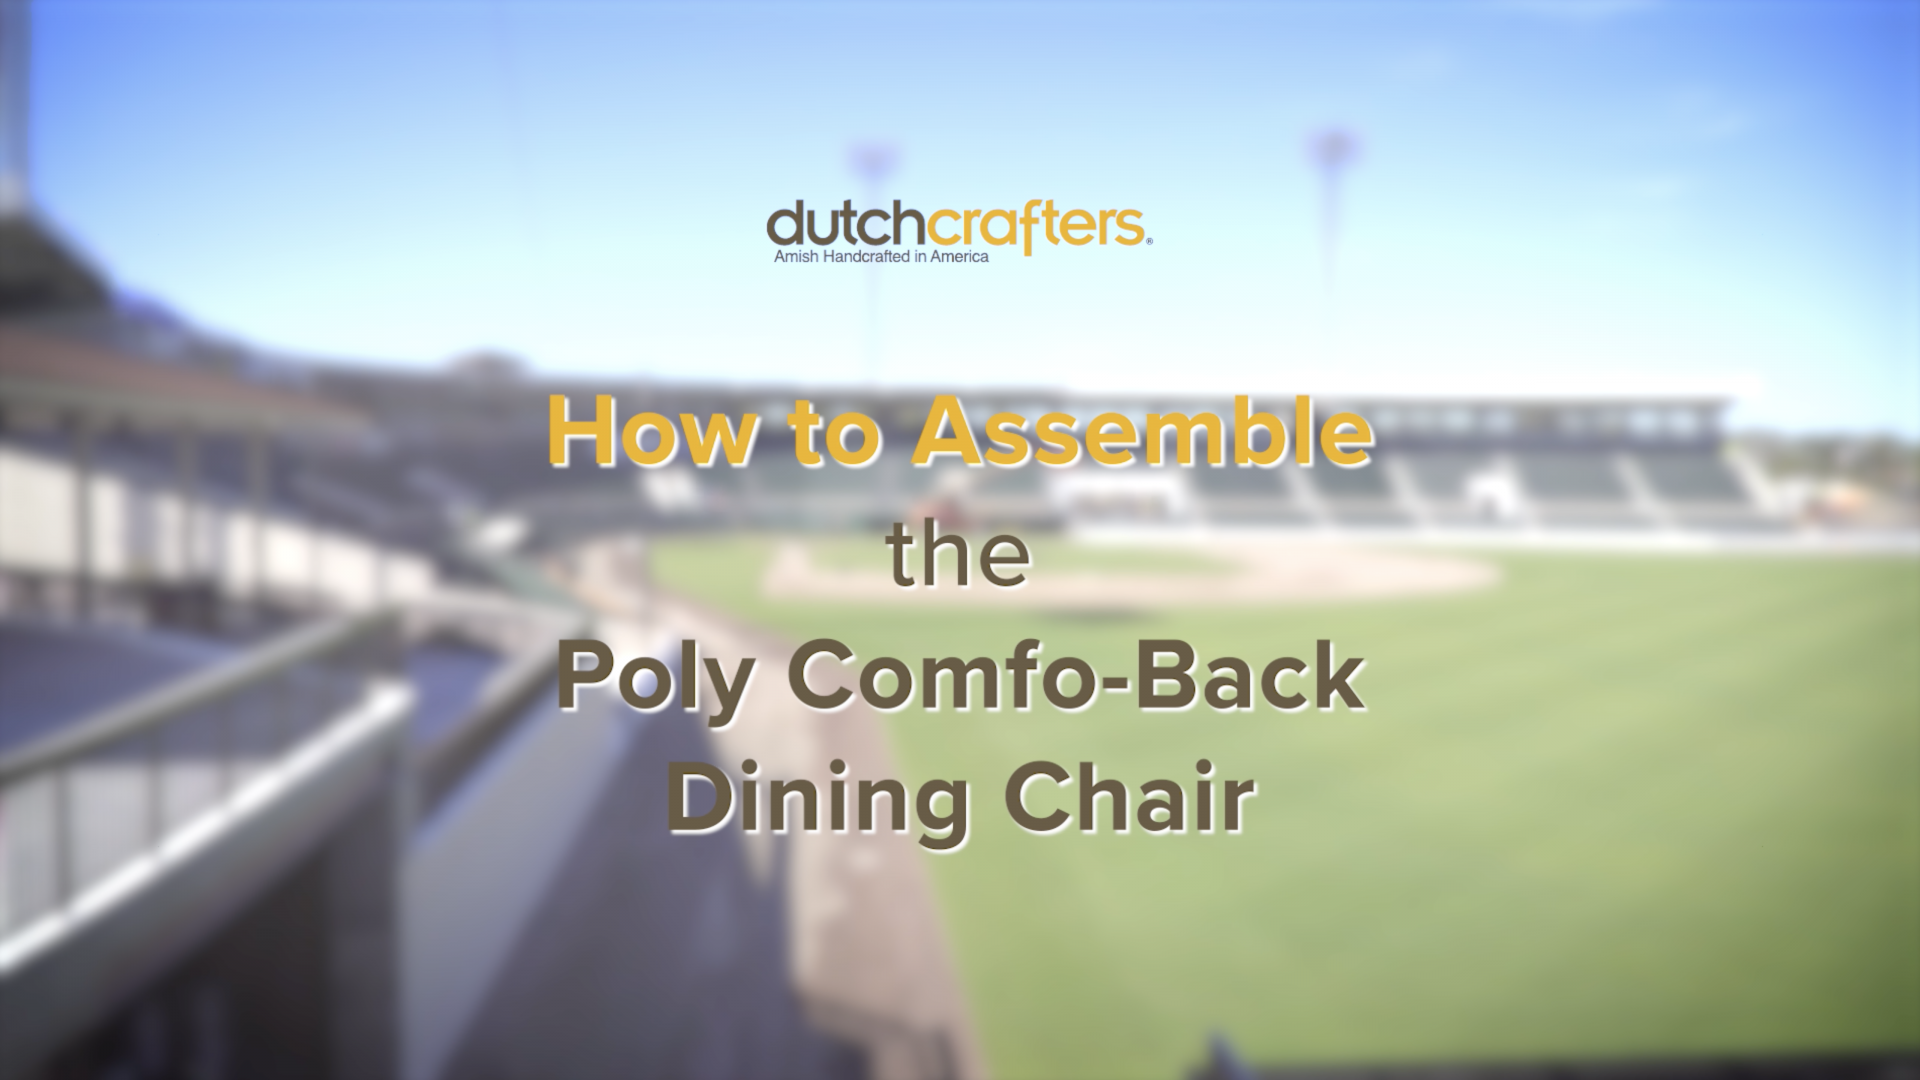 How to Assemble the Comfo-Back Poly Dining Chair Title Screen